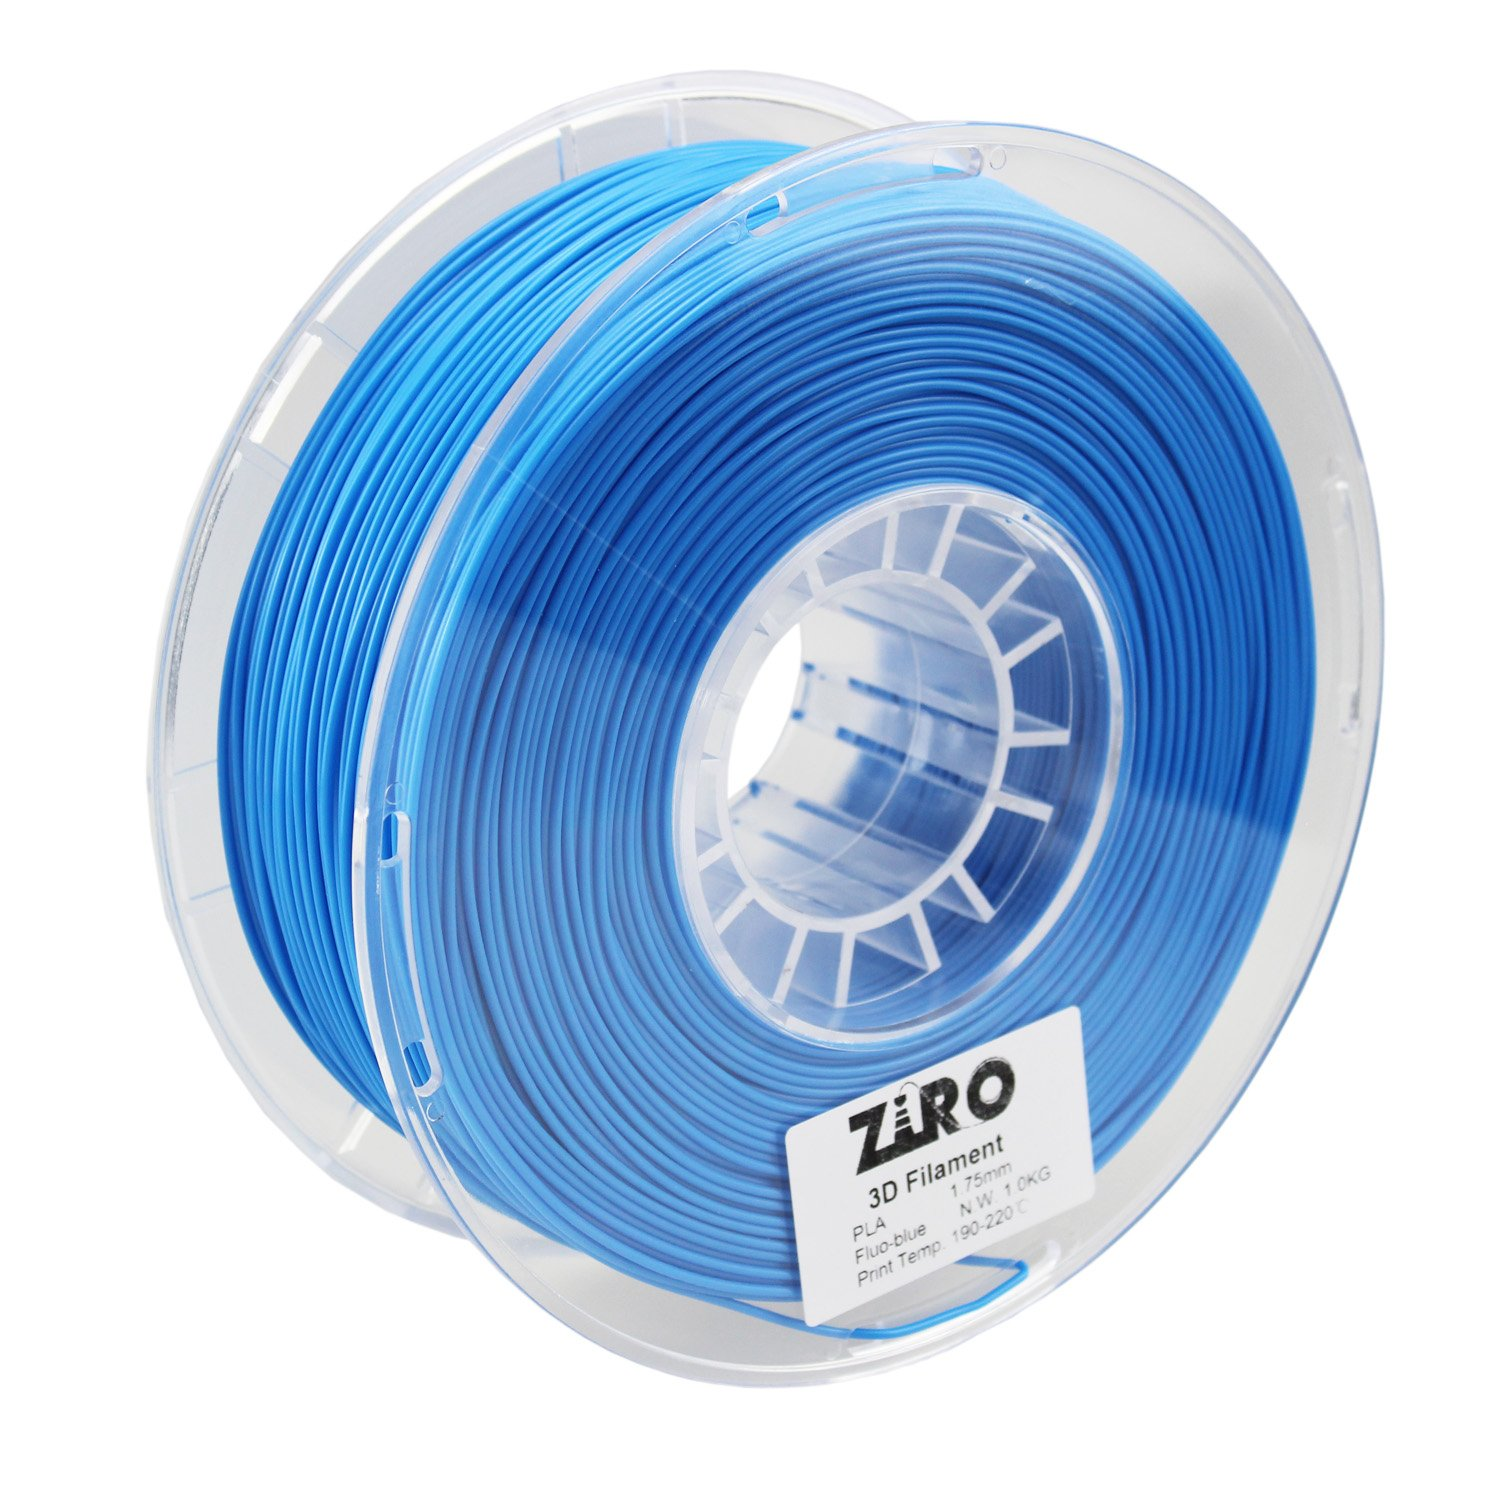 ZIRO 3D Printer Filament PLA 1.75 1KG(2.2lbs), Dimensional Accuracy +/- 0.05mm, Fluo blue